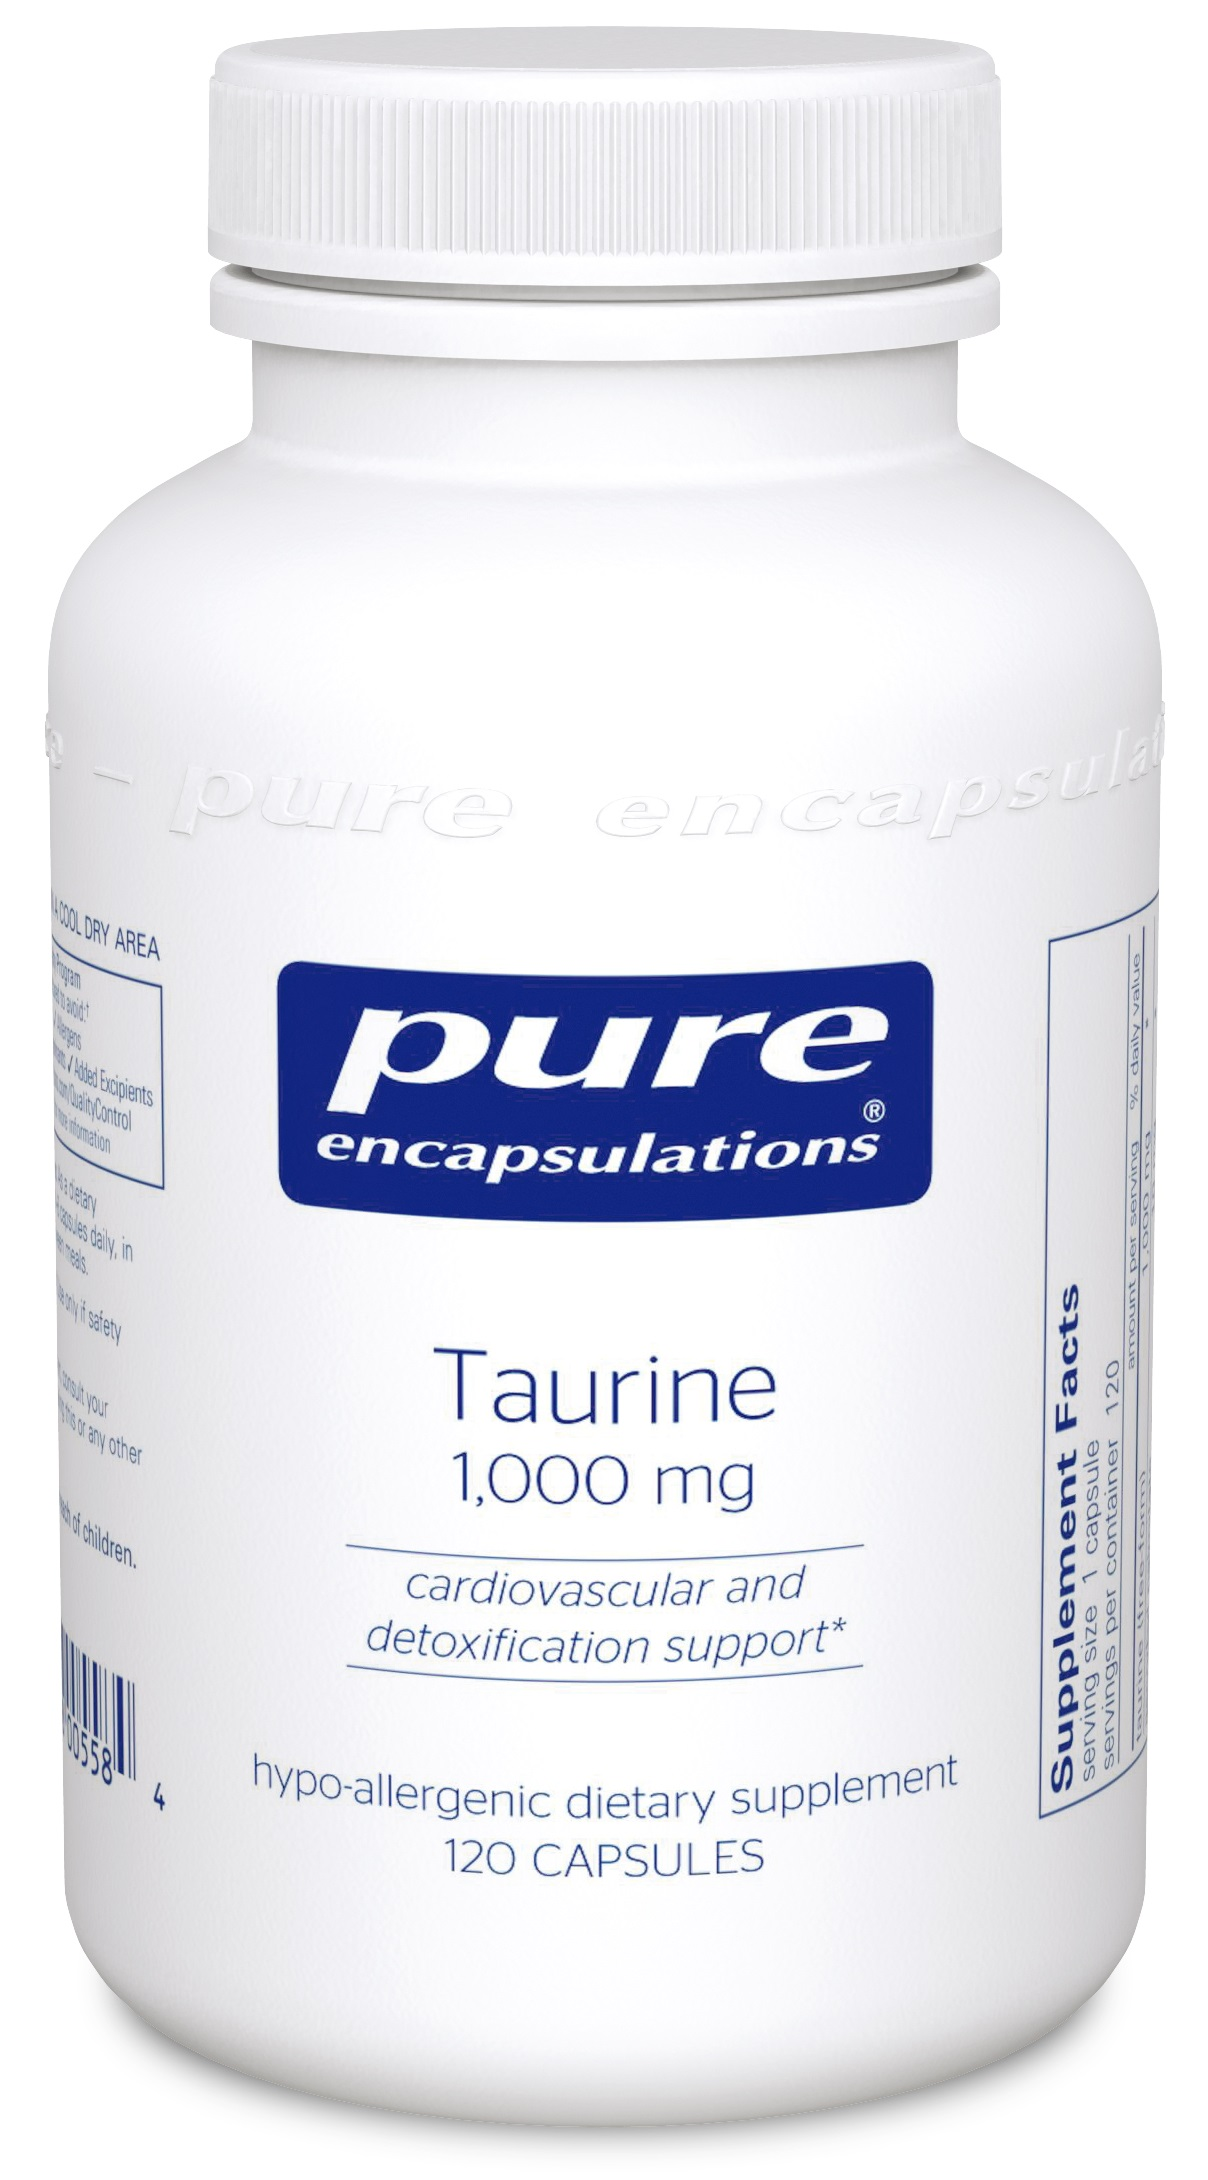 Pure Encapsulations Taurine 1,000 mg